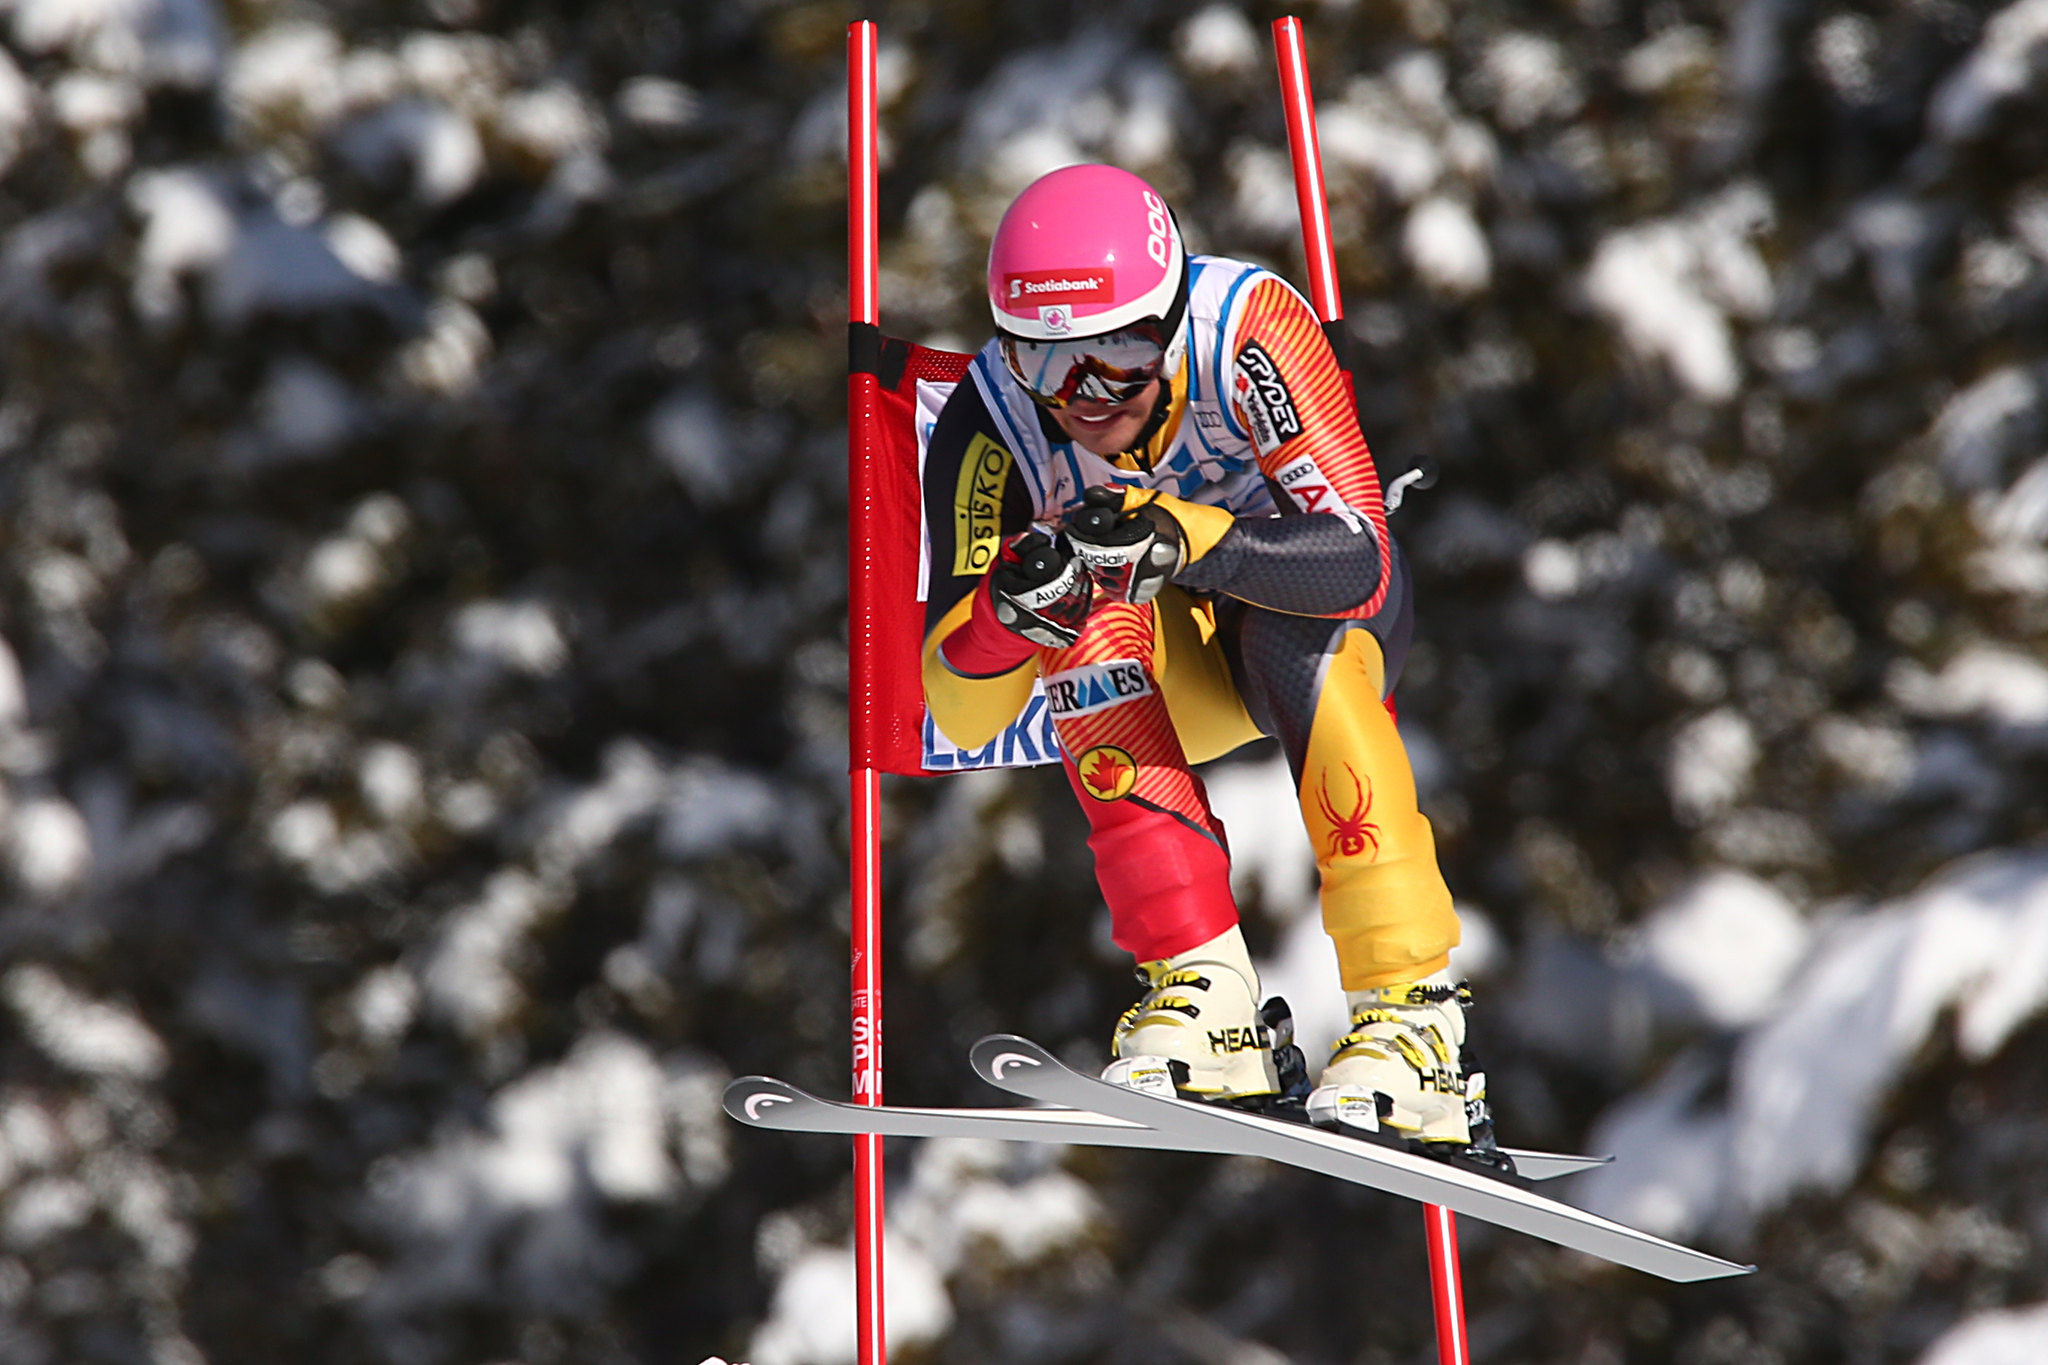 Ben Thomsen during World Cup downhill in Lake Louise.